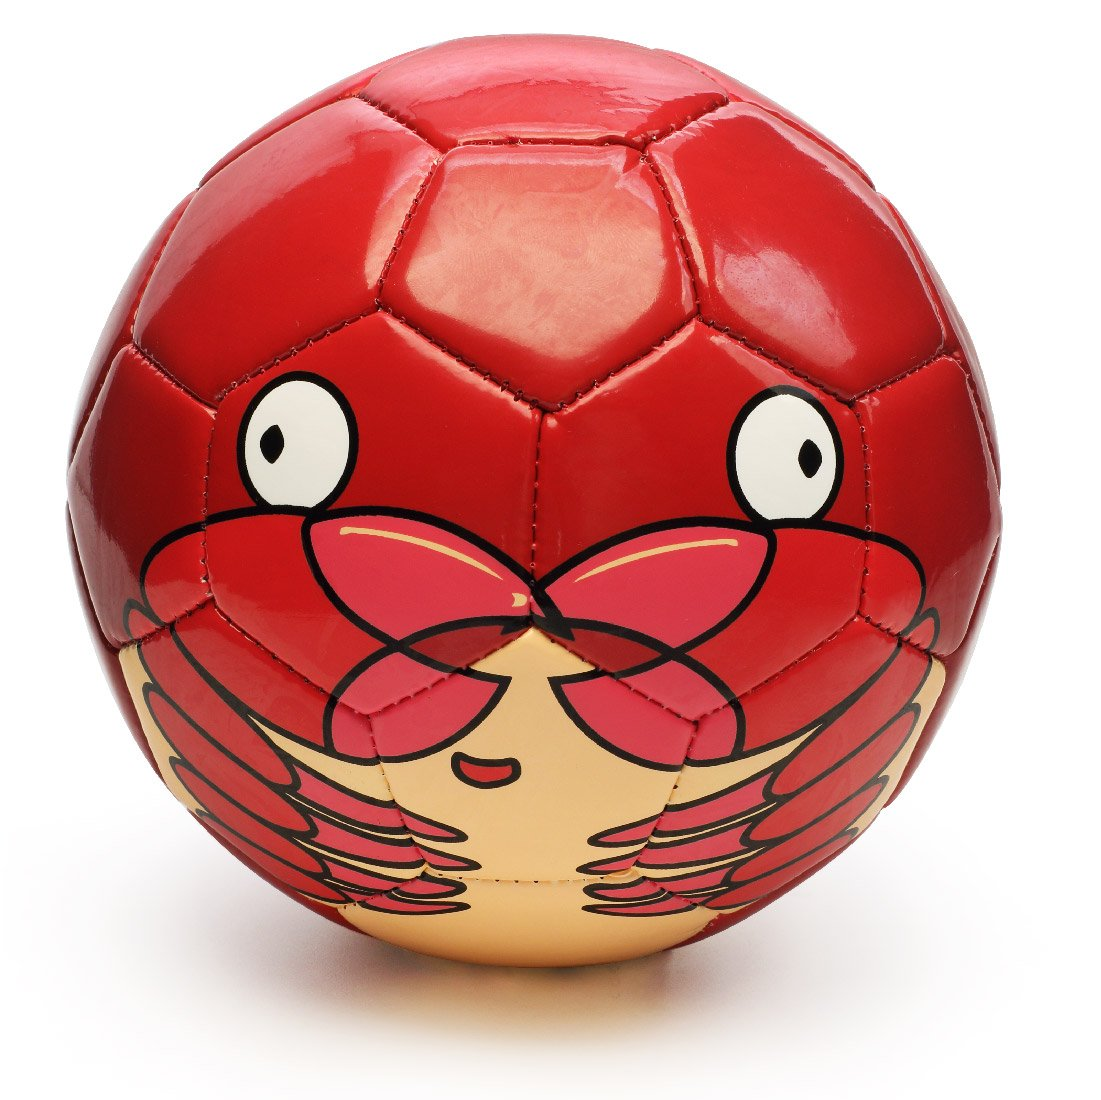 PP Picador Picador幼児用サッカーボールおもちゃCute Cartoon TPUサッカーおもちゃギフトwithポンプ B078TFJNCG Red Crab Red Crab